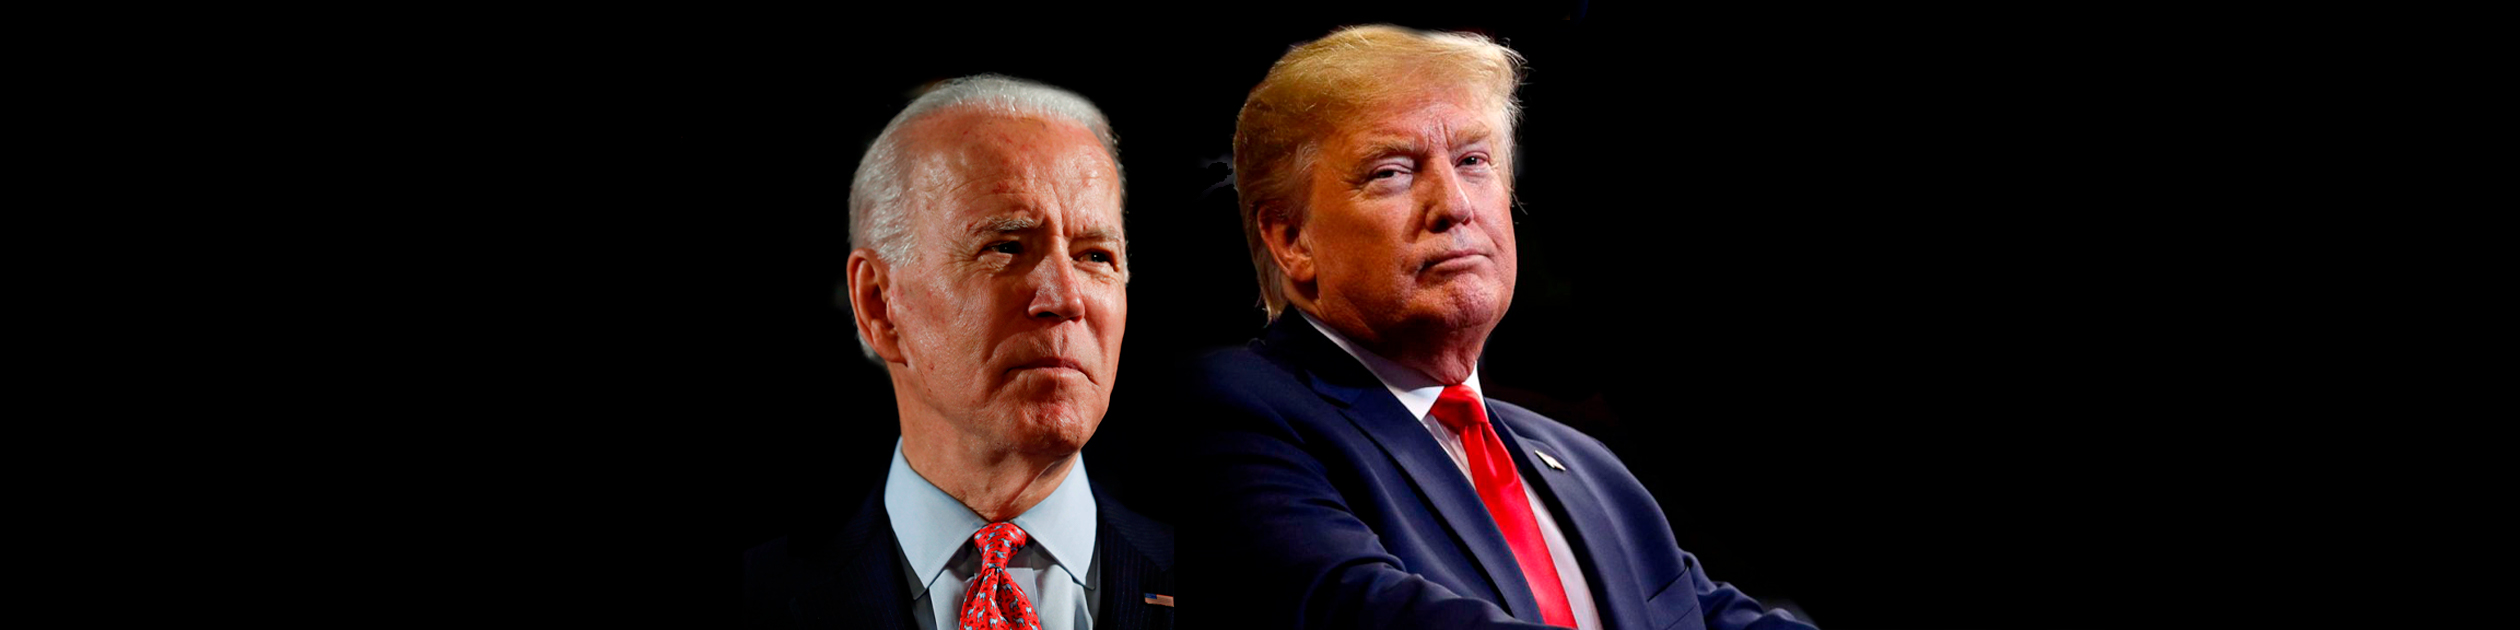 Letter to the Biden and Trump campaigns calling for a real Good Neighbor policy for Latin America and the Caribbean